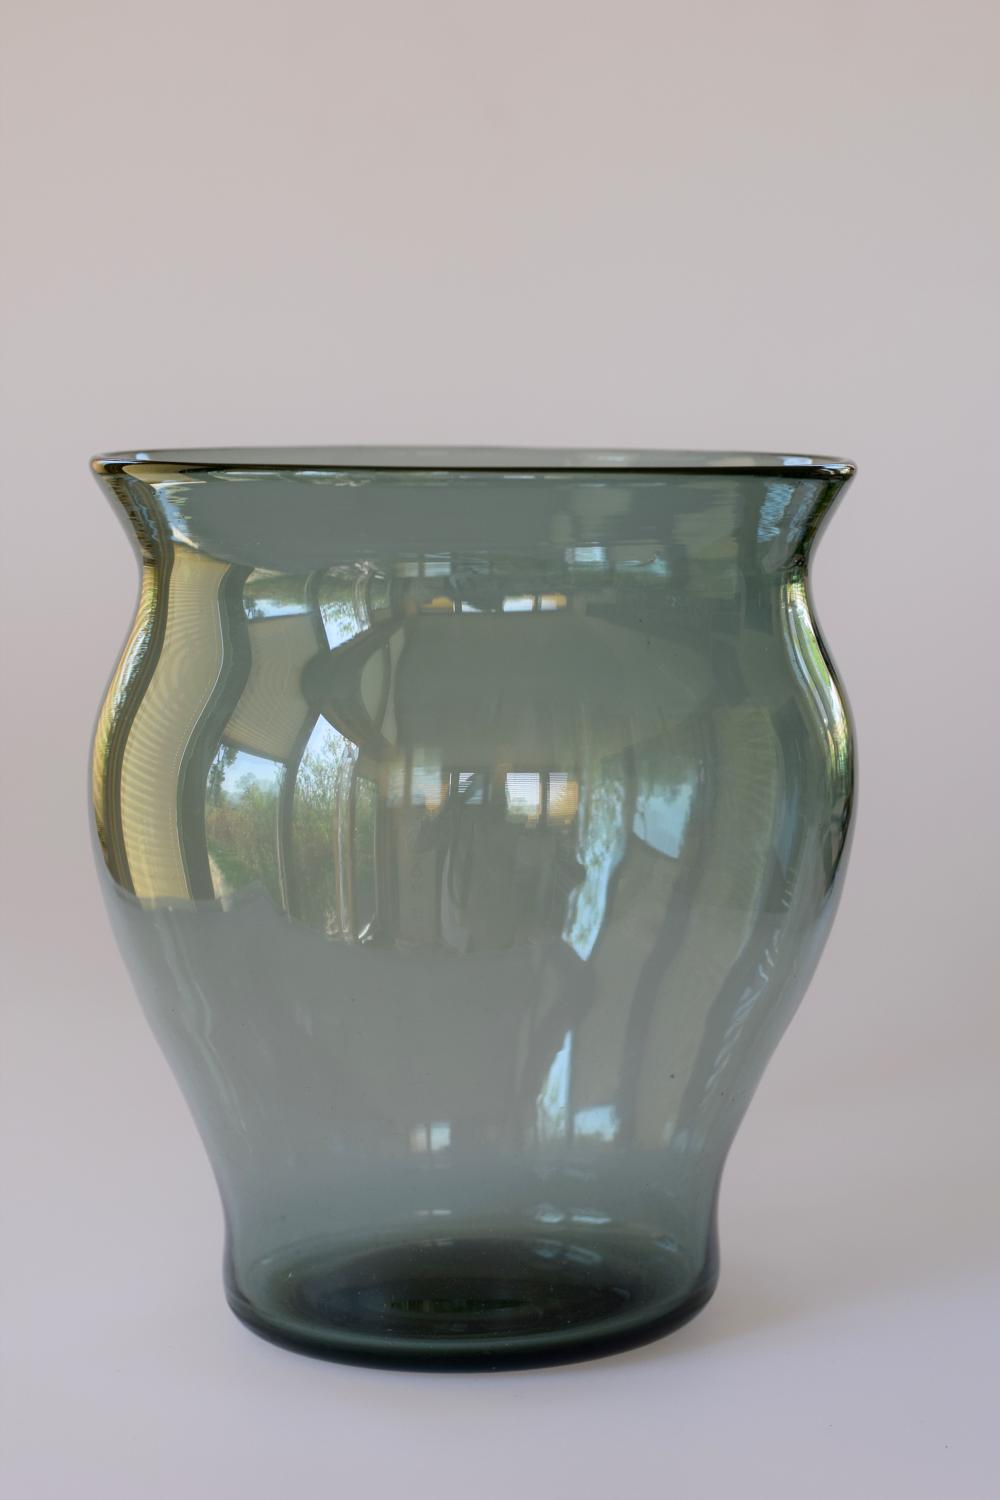 Vase by Keith Murray for Stevens and Williams.